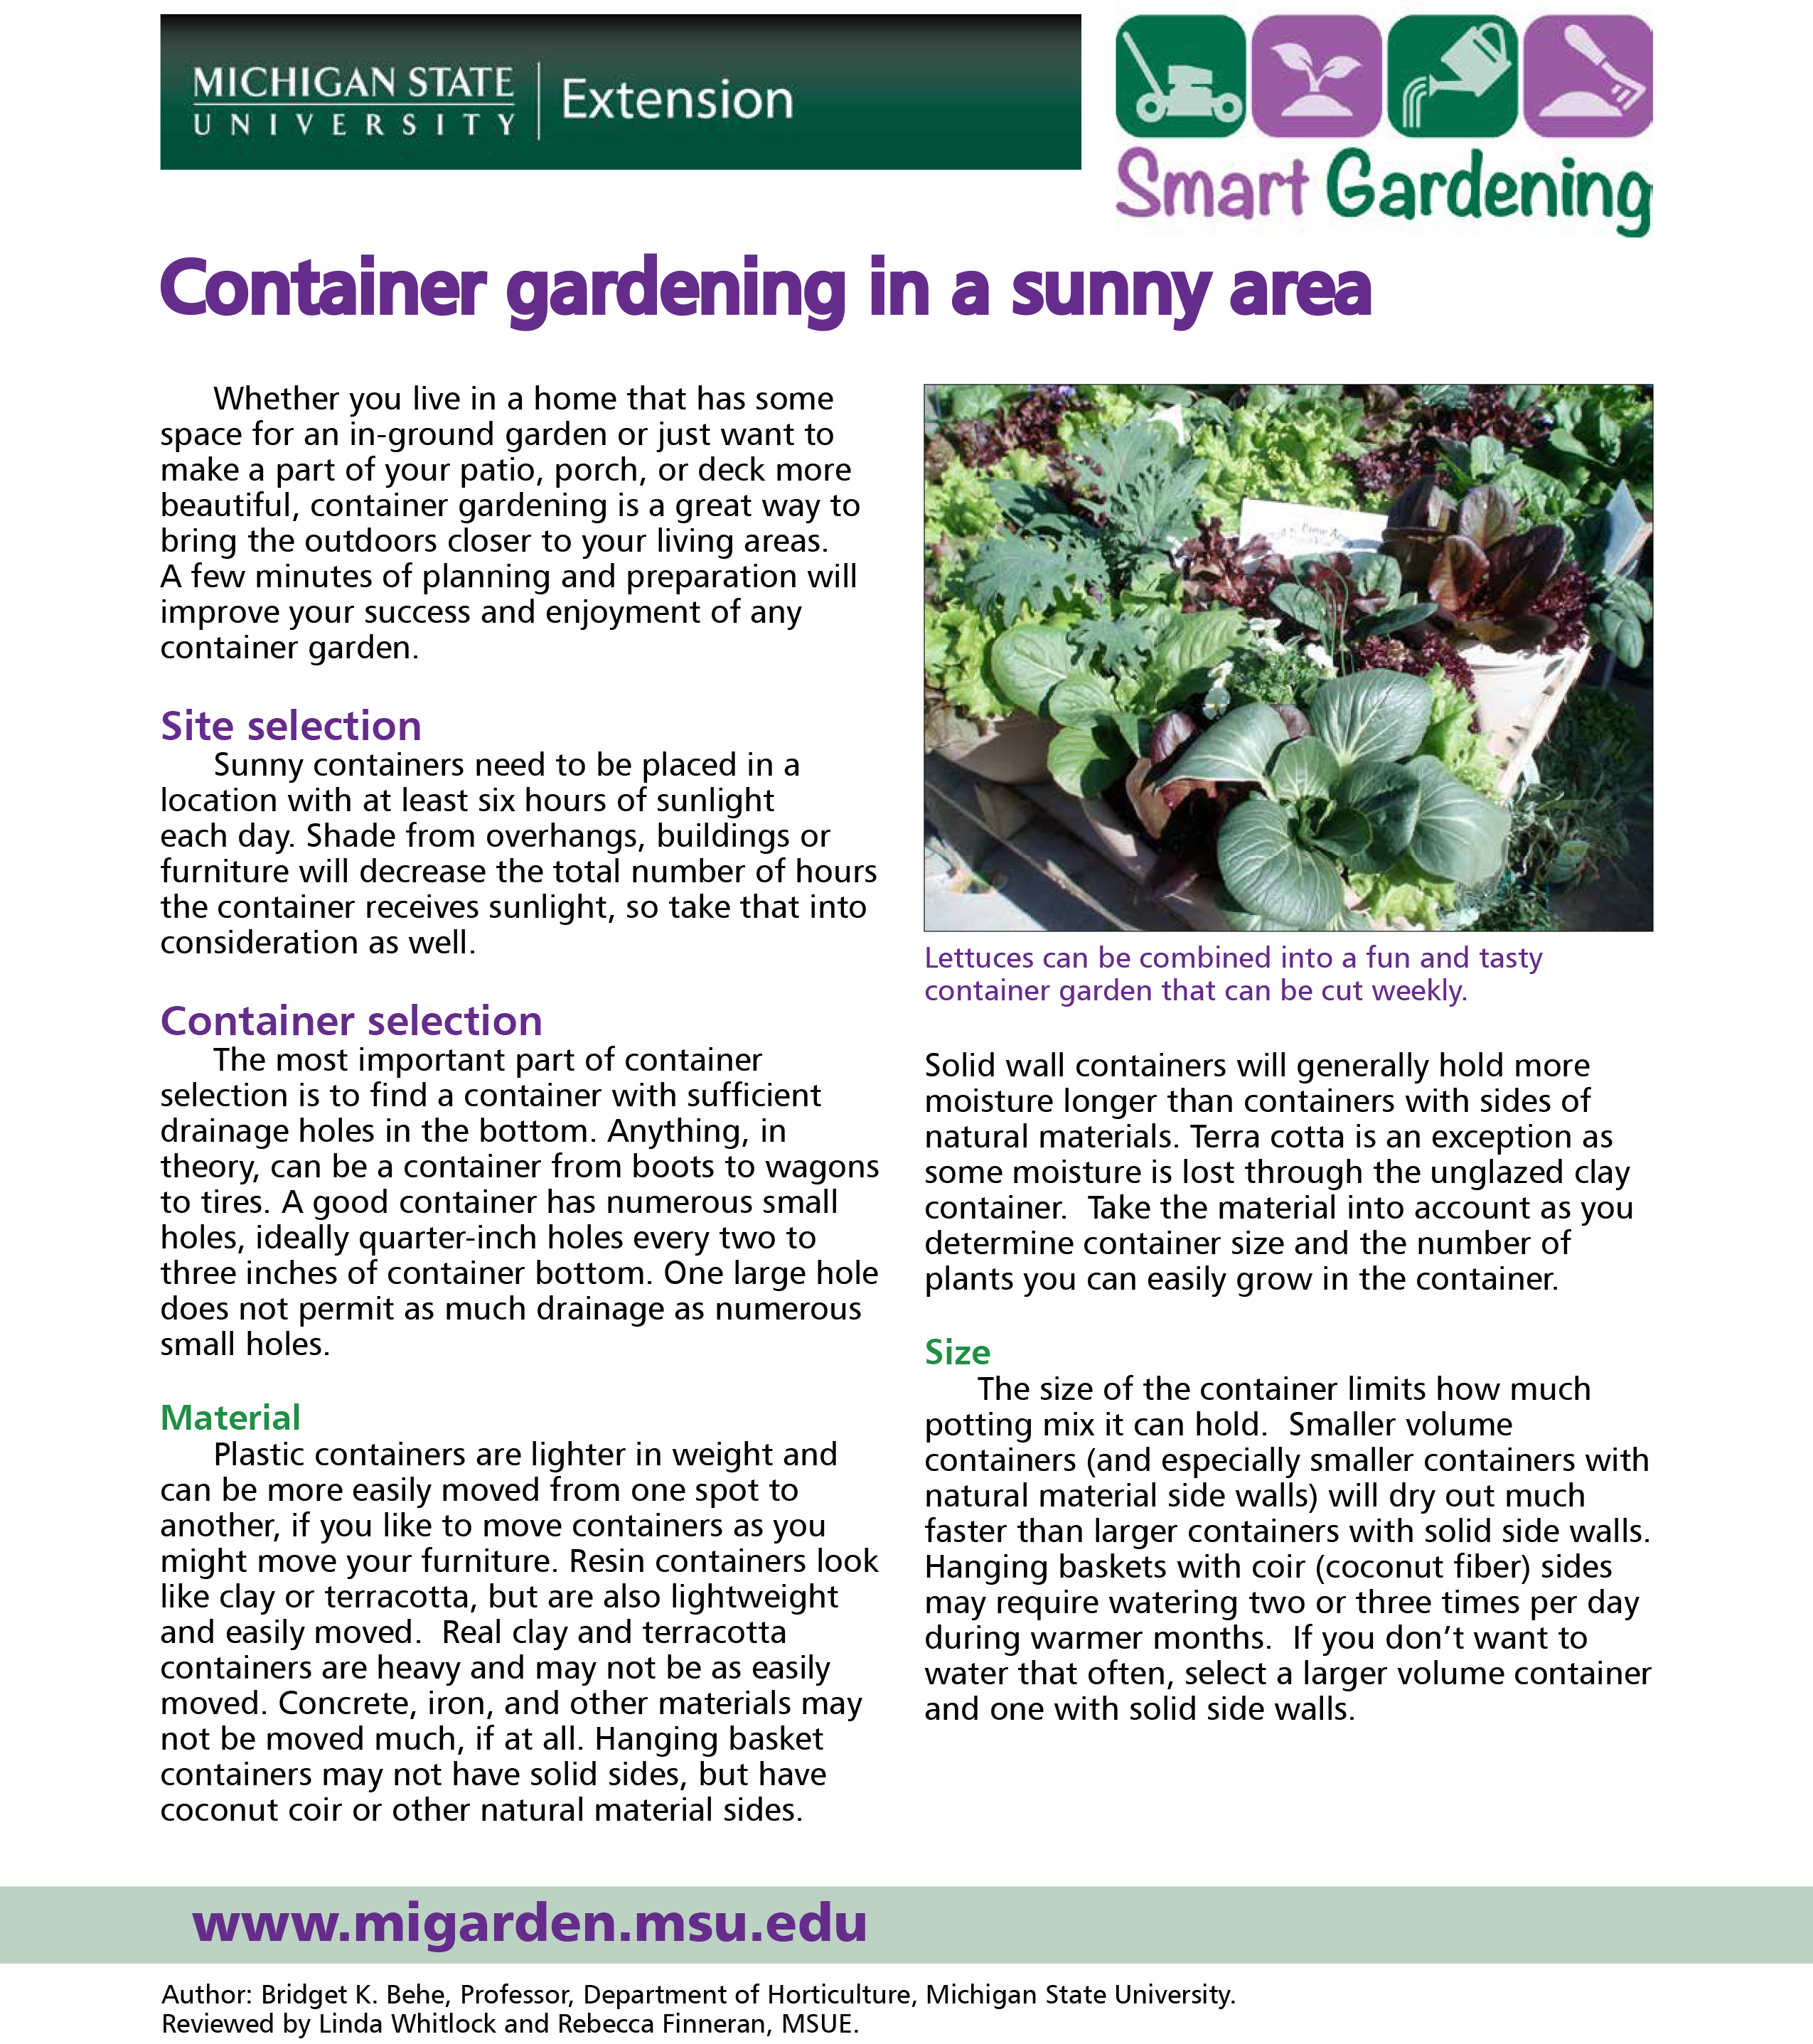 Container gardening in a sunny area tip sheet